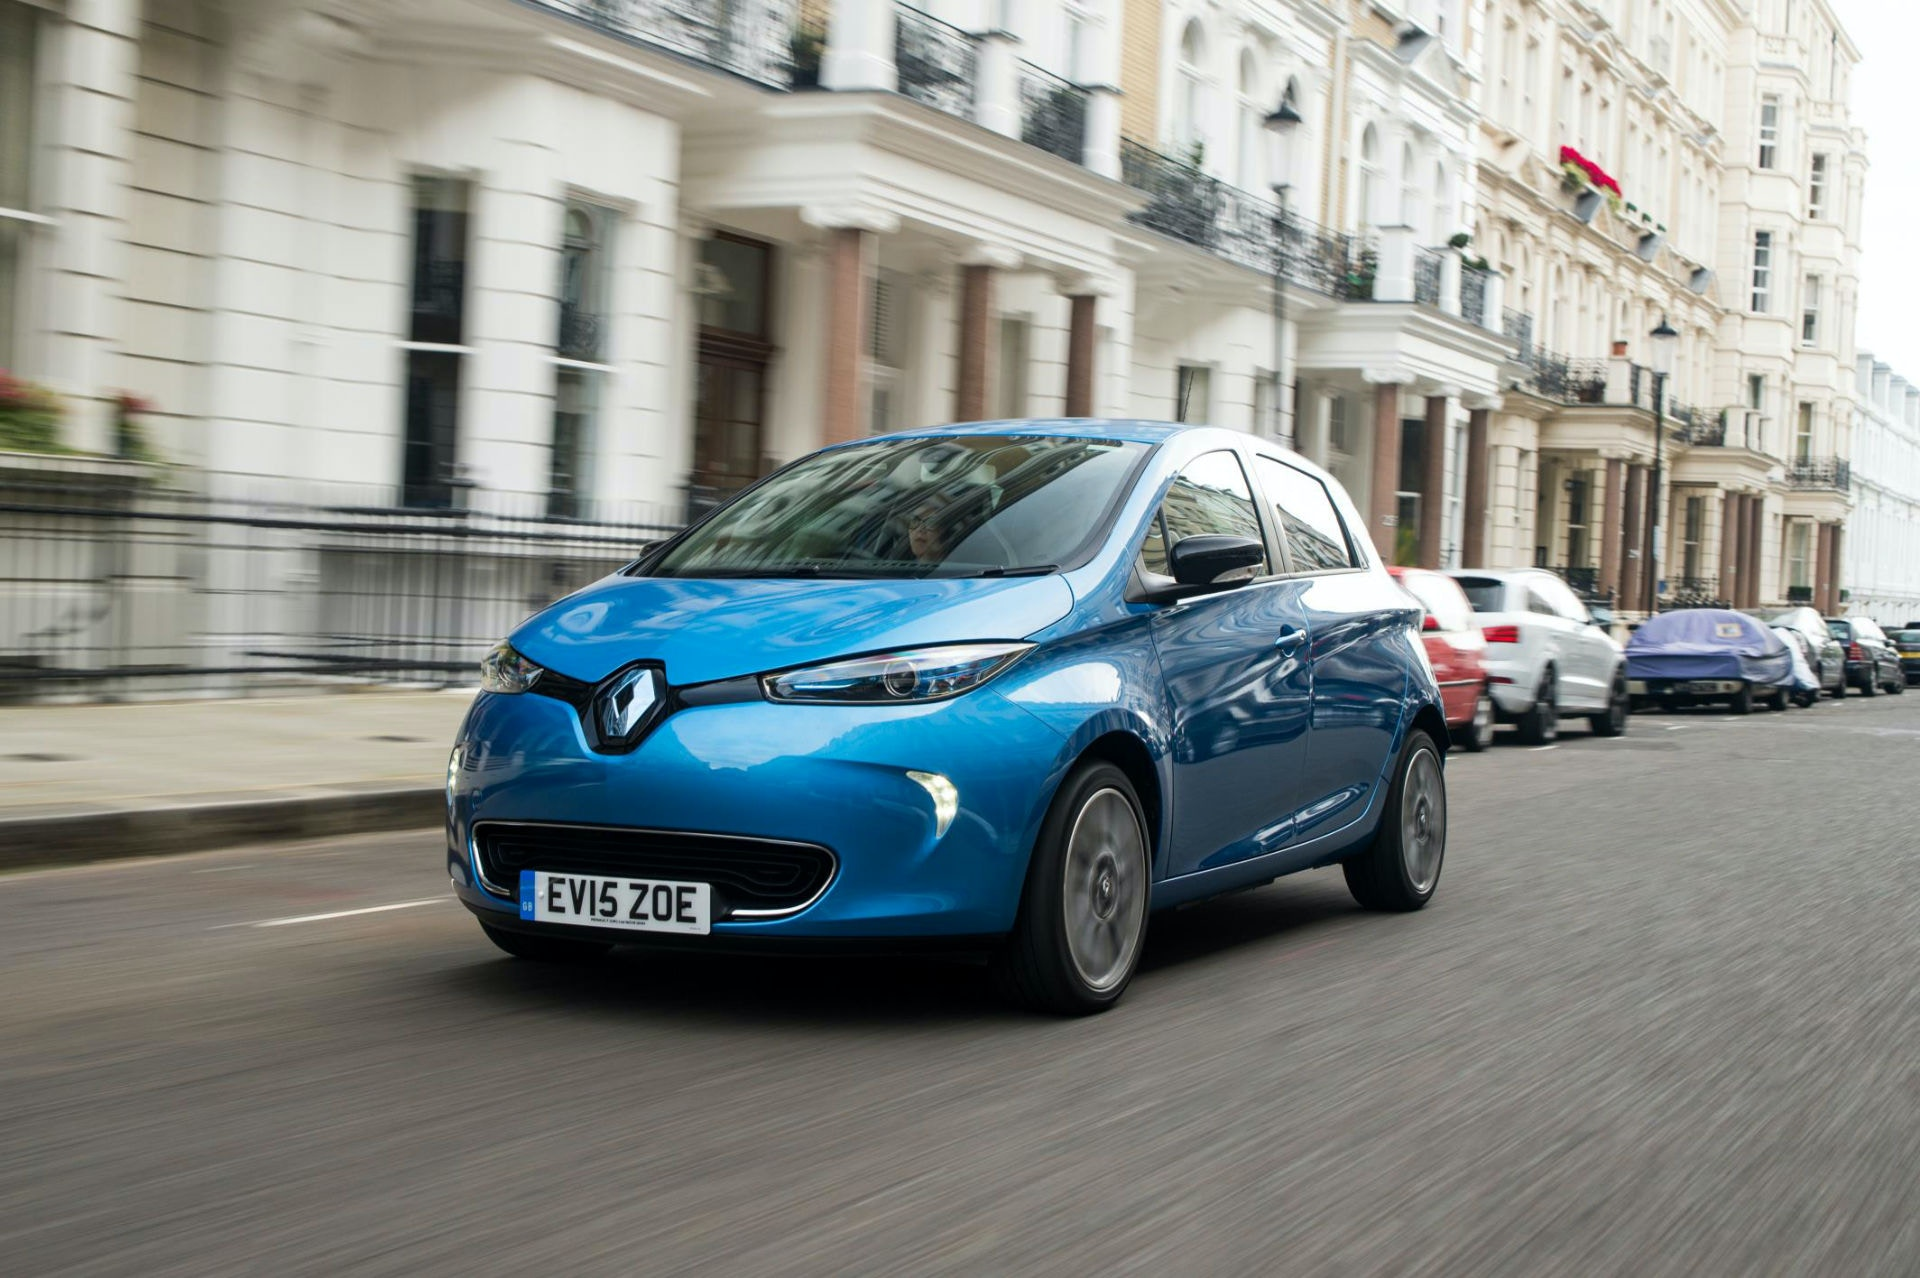 Renault Zoe is an affordable second hand EV for less than £10,000.